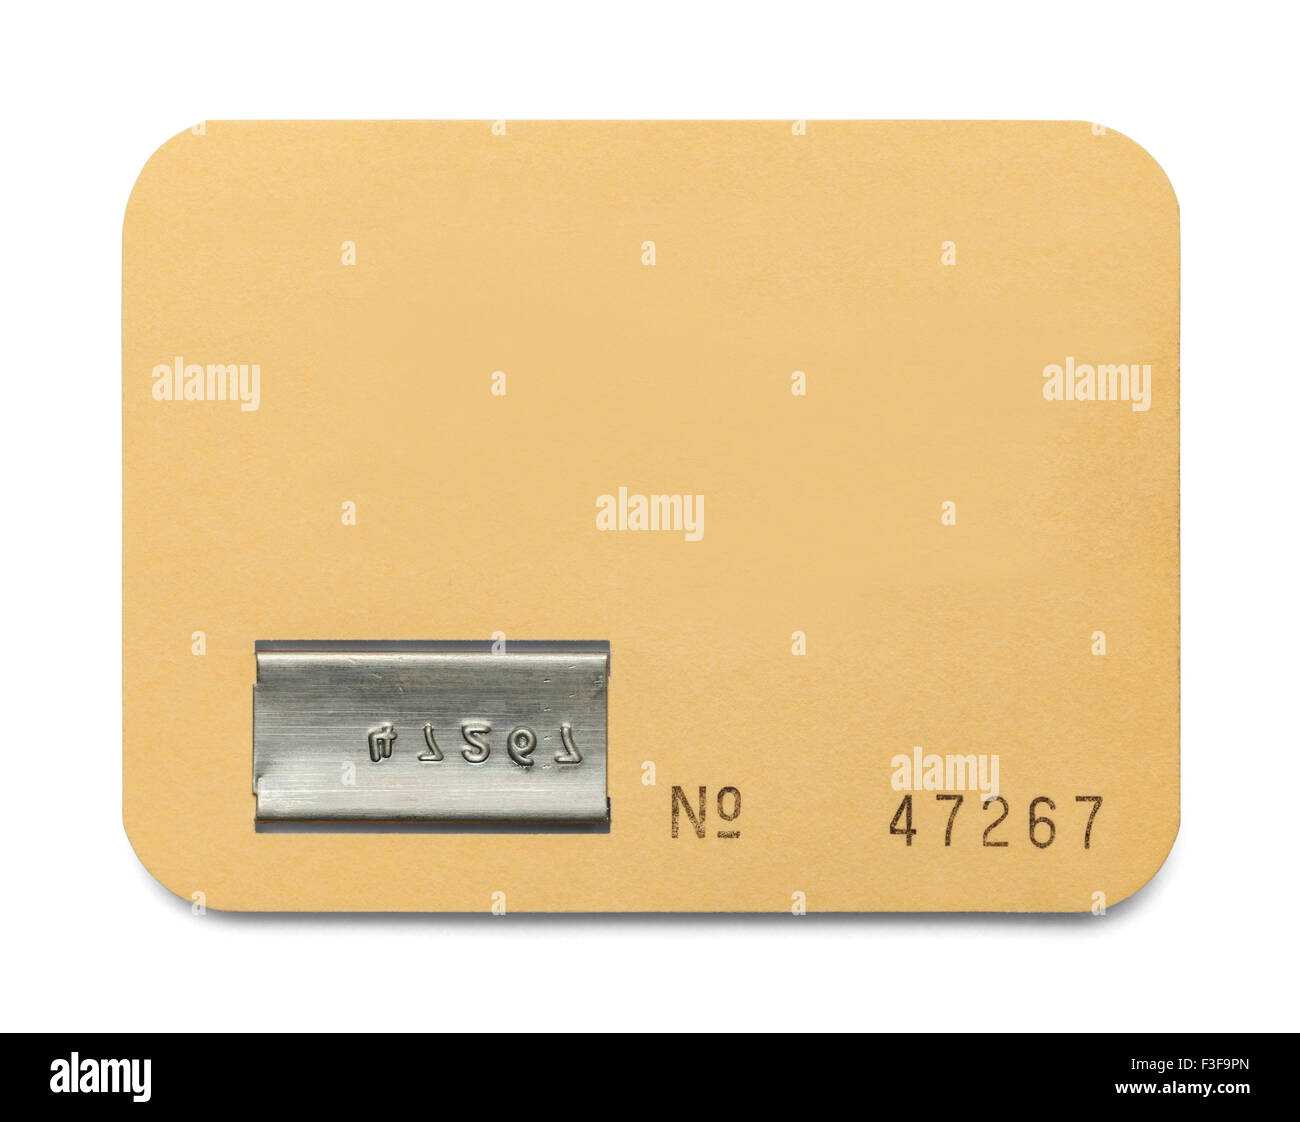 Papier-ID-Karte mit textfreiraum Isolated on White Background. Stockbild